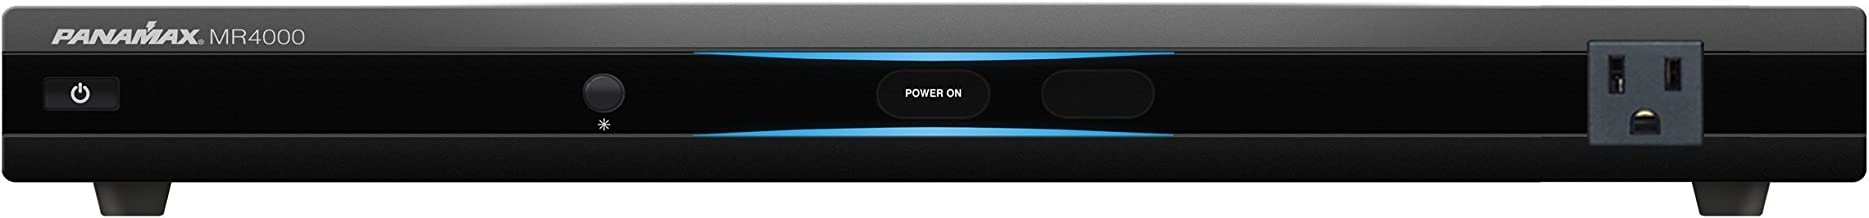 Panamax MR4000 MR4000 8-Outlet Home Theater Power Management with Surge Protection and Power Conditioning